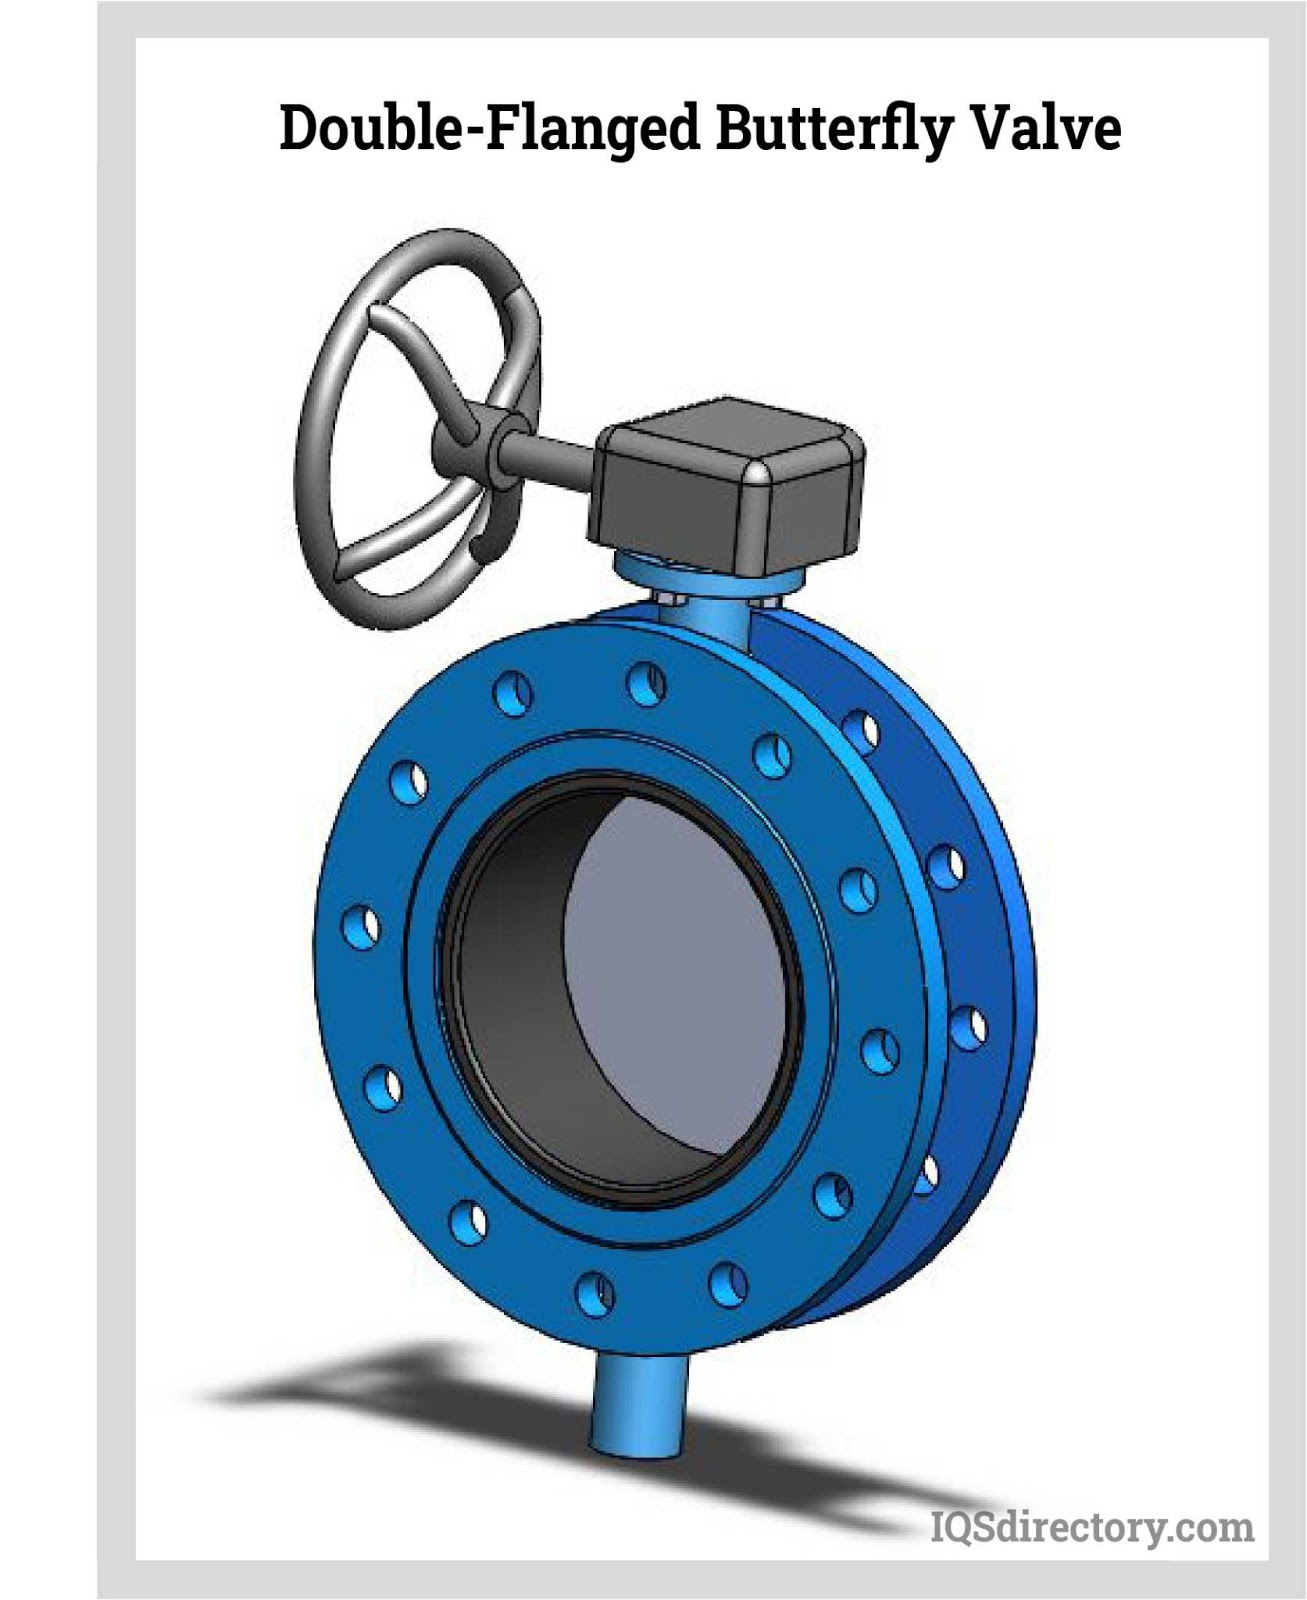 Double-Flanged Butterfly Valve